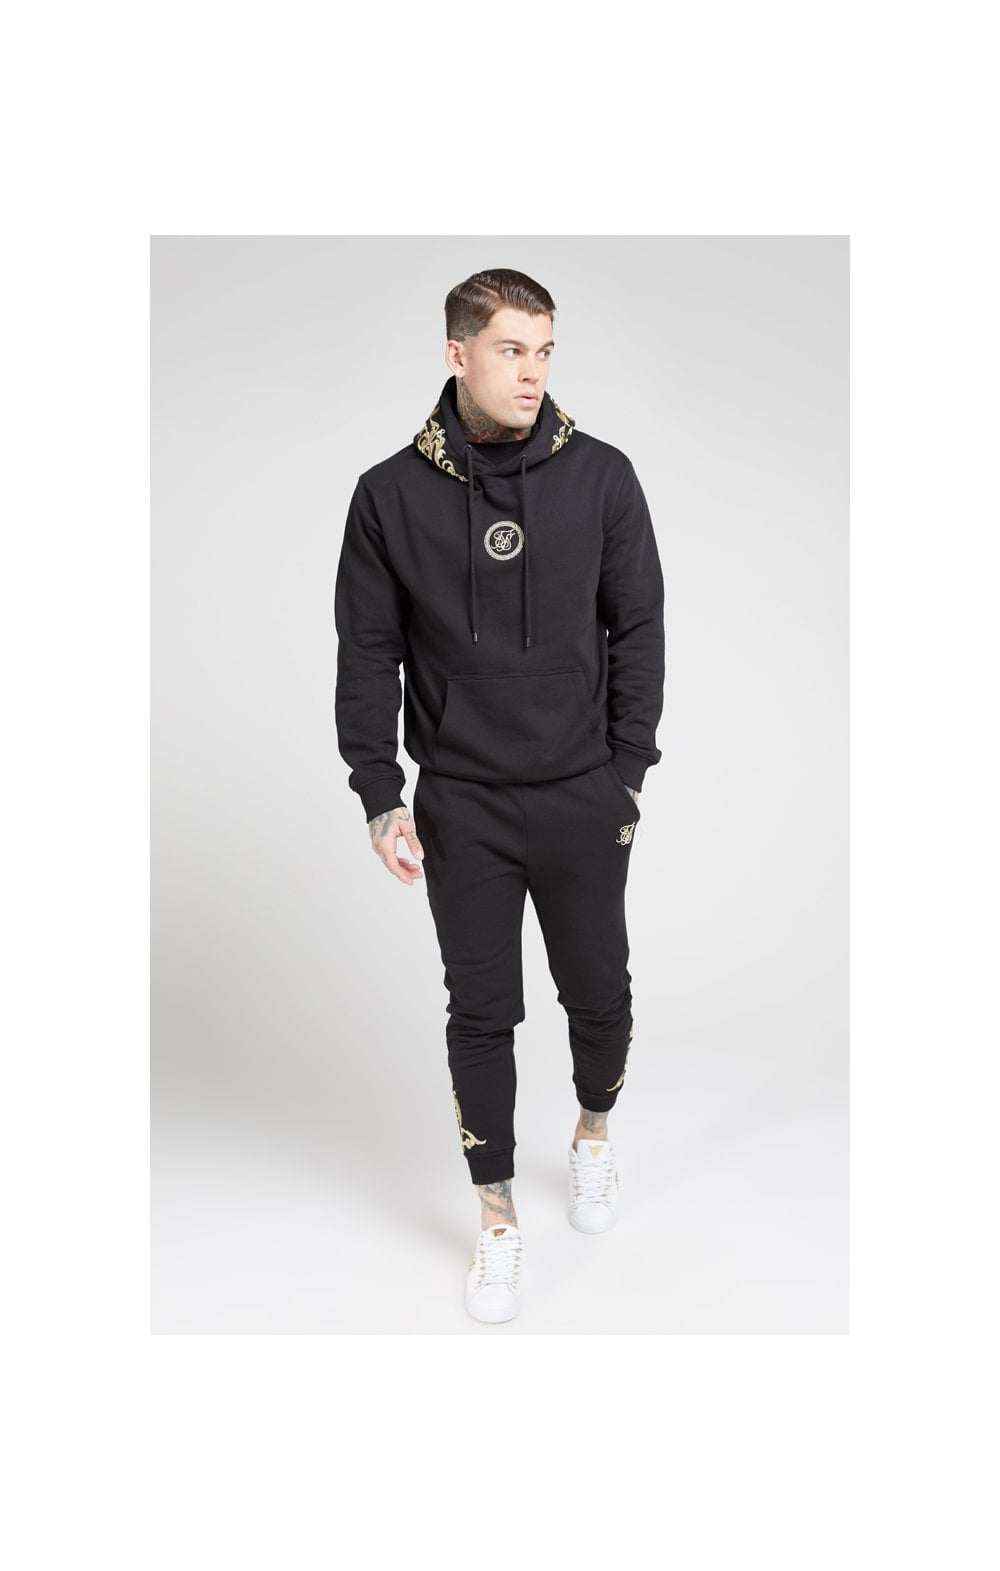 Load image into Gallery viewer, SikSilk Overhead Hoodie – Jet Black & Gold (4)